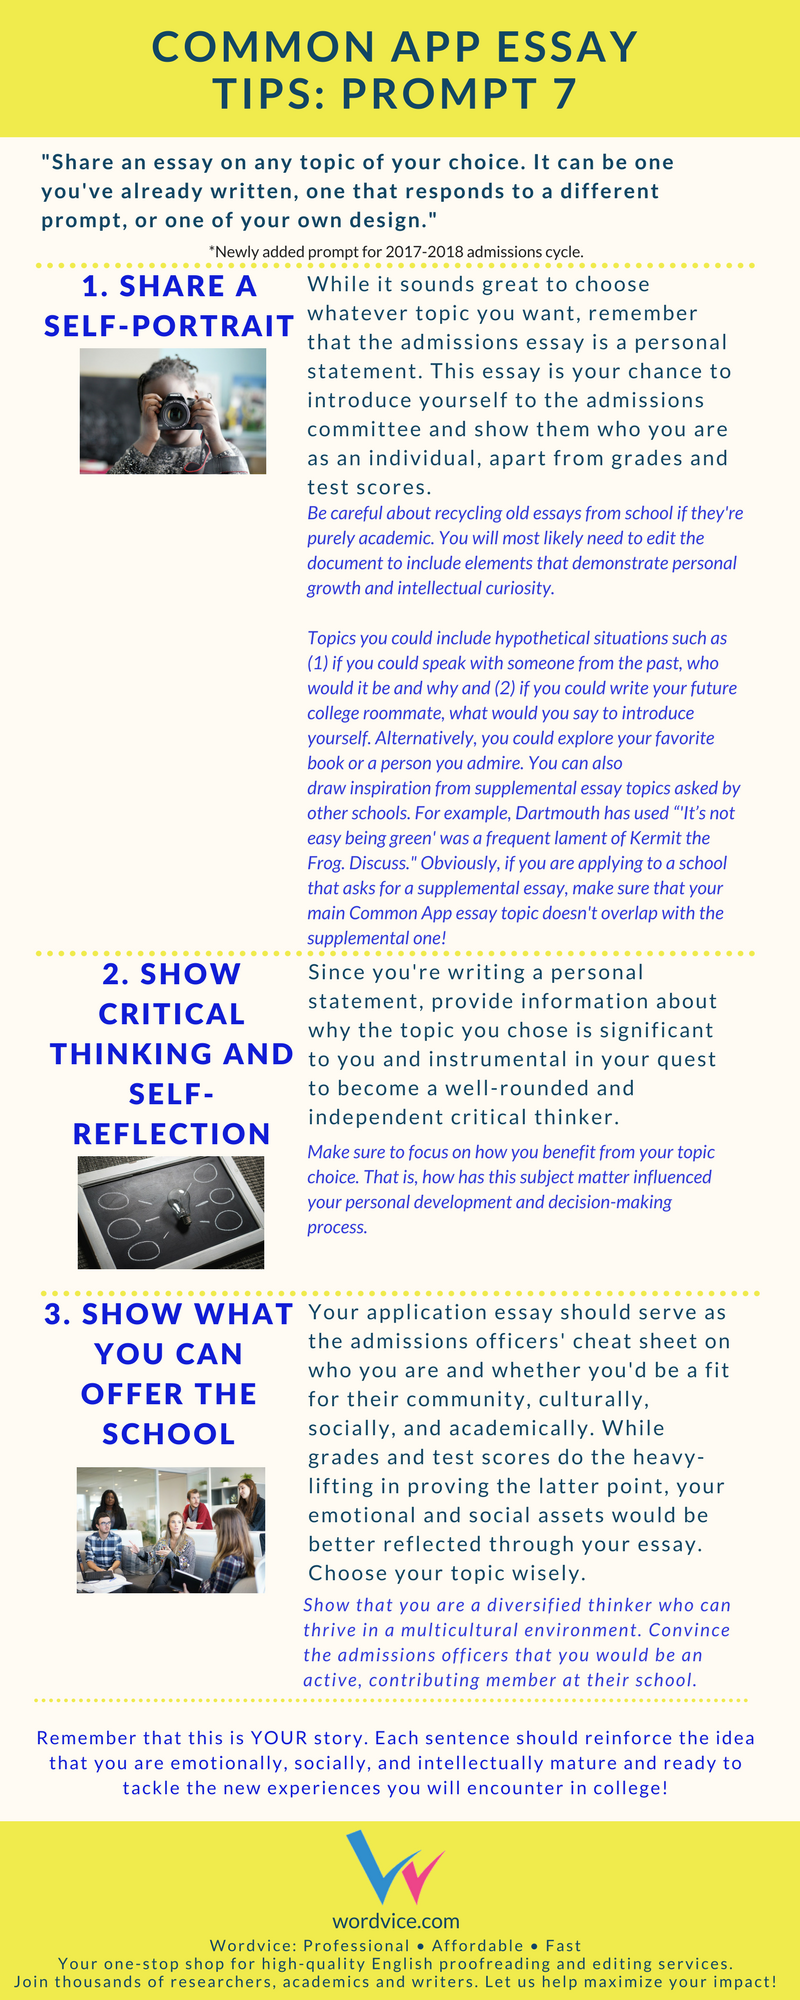 010 Common Application Essay Prompts Example App Brainstormprompt Best 2017 Examples Full